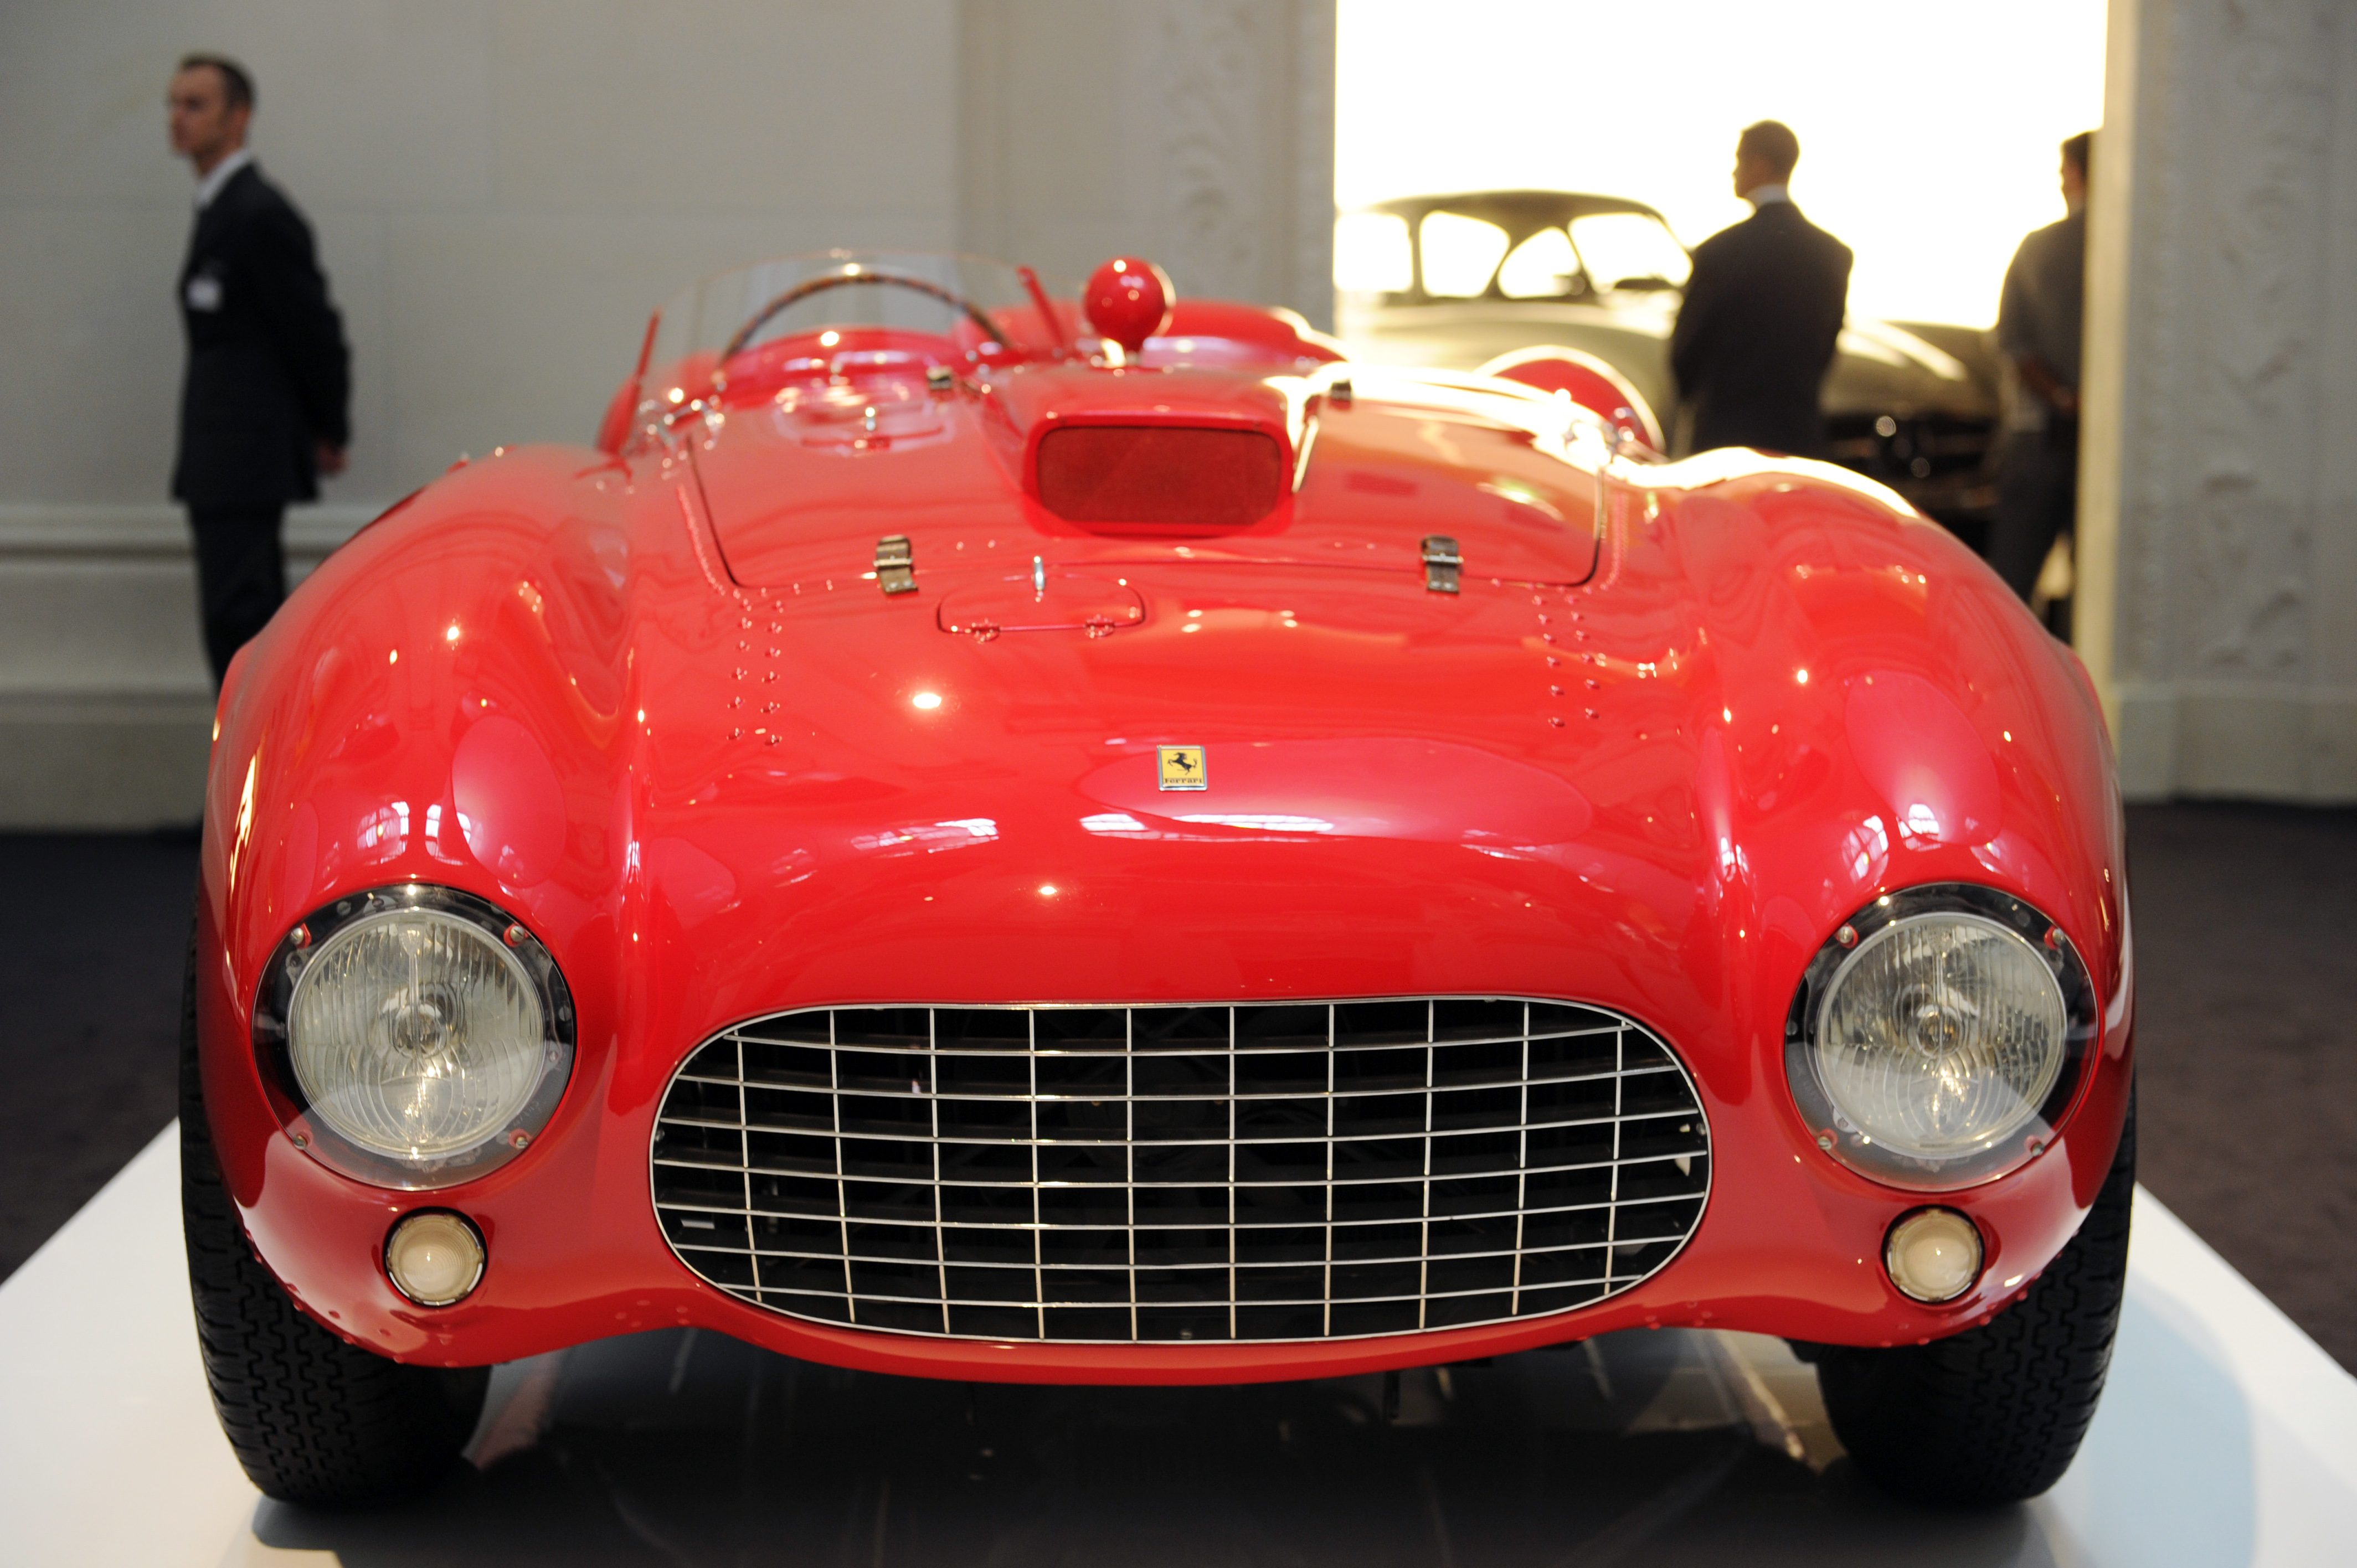 A Ferrari 375 Plus of 1954 is shown on A